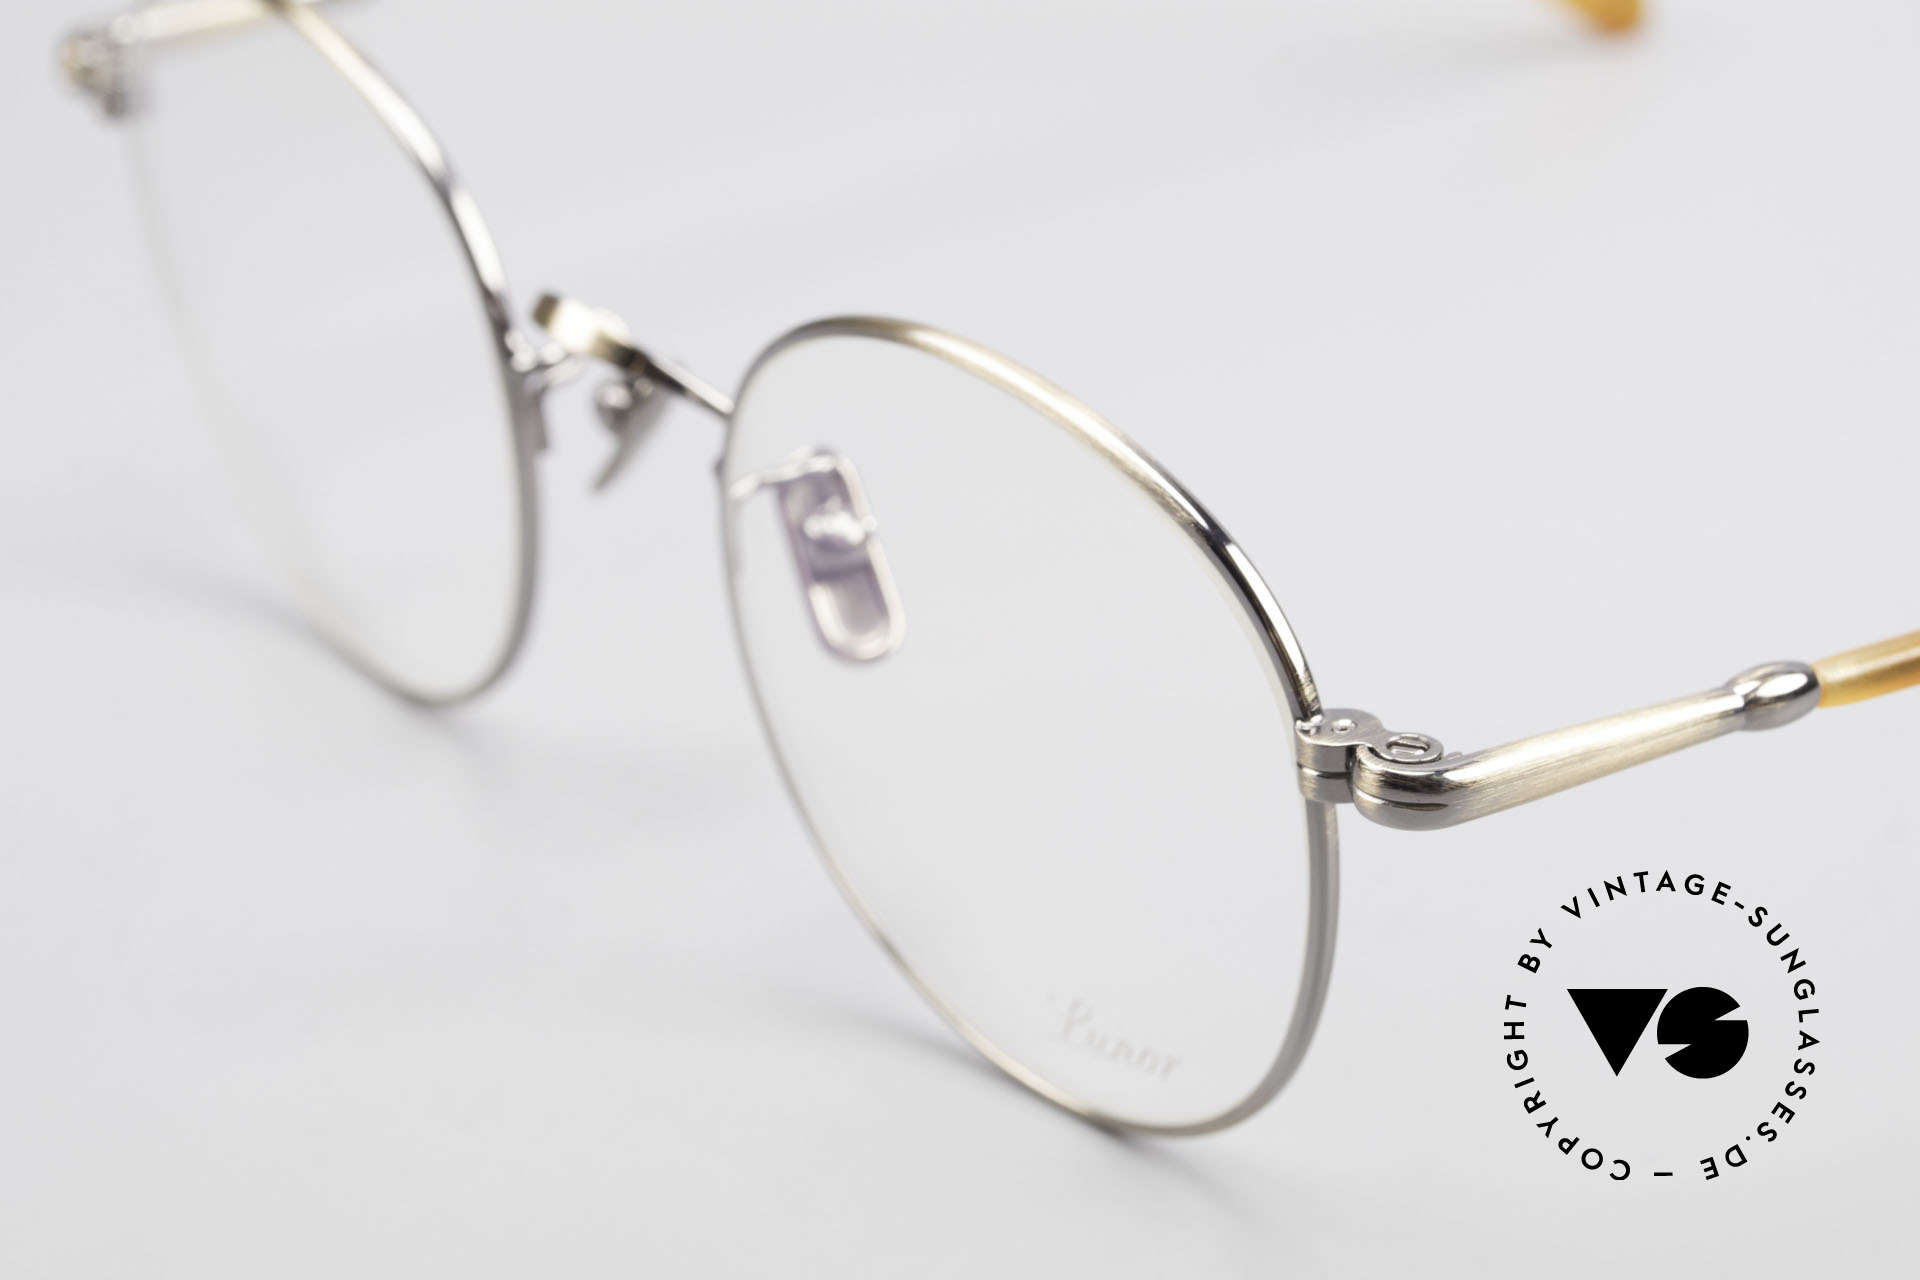 Lunor VA 111 Classy Men's Panto Eyeglasses, from the 2015's collection, but in a well-known quality, Made for Men